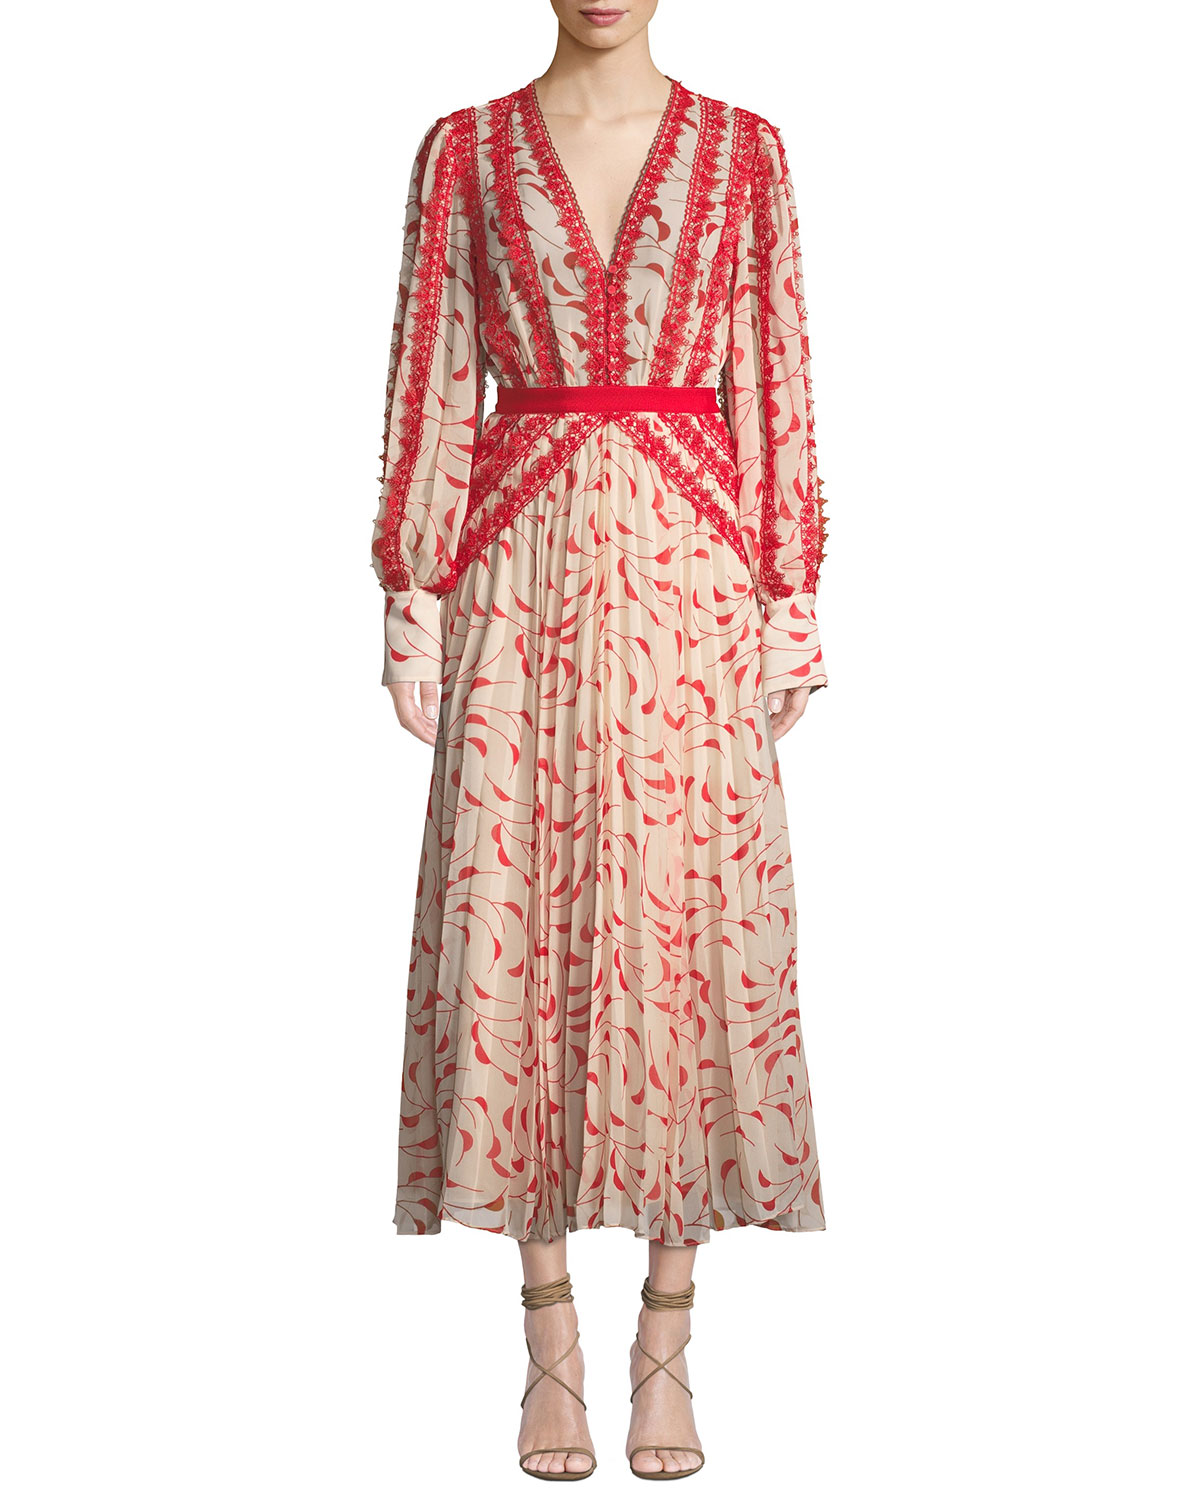 Printed Chiffon Lace Pleated Long-Sleeve Midi Dress in Cream/Red